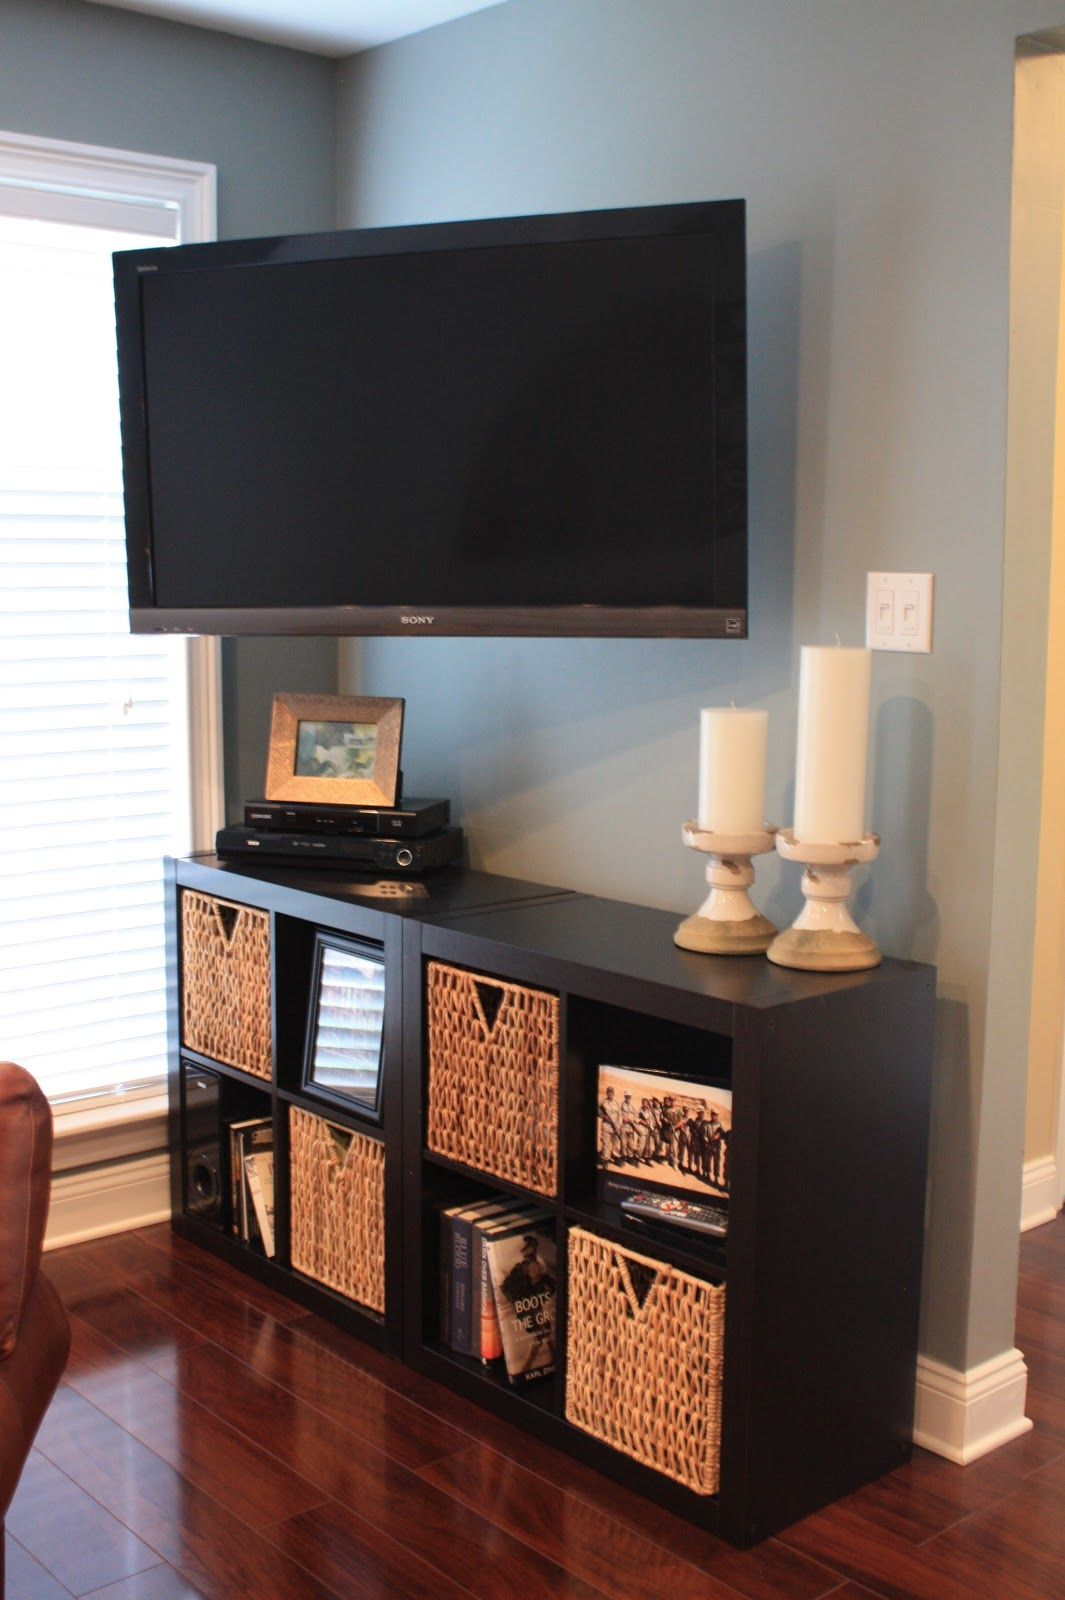 Tv In Small Bedroom : small, bedroom, Little:, Before, Afters, Apartment, Decor,, Decor